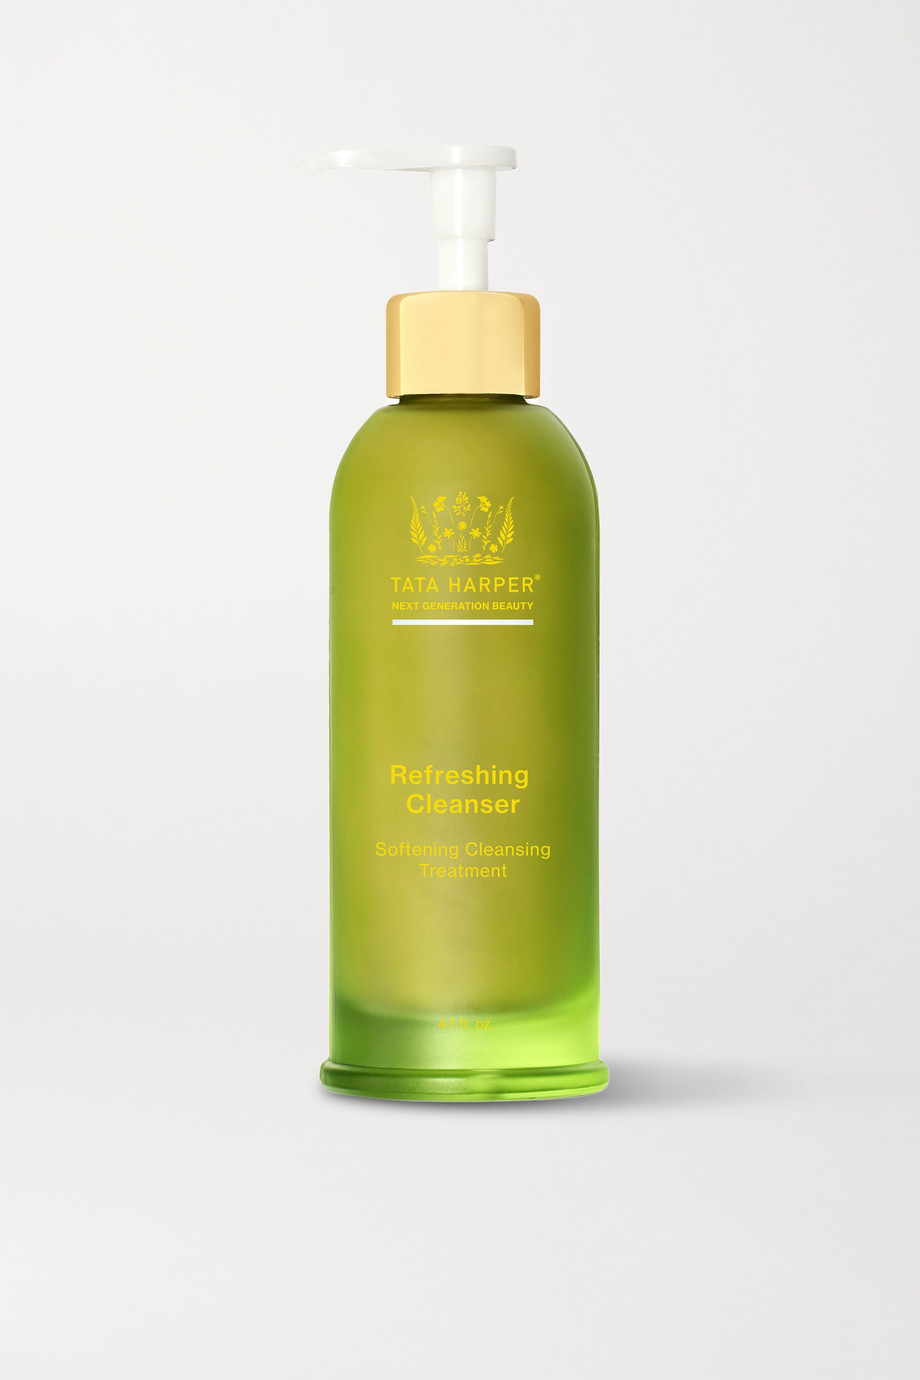 Large Refreshing Cleanser, 125ml, by Tata Harper